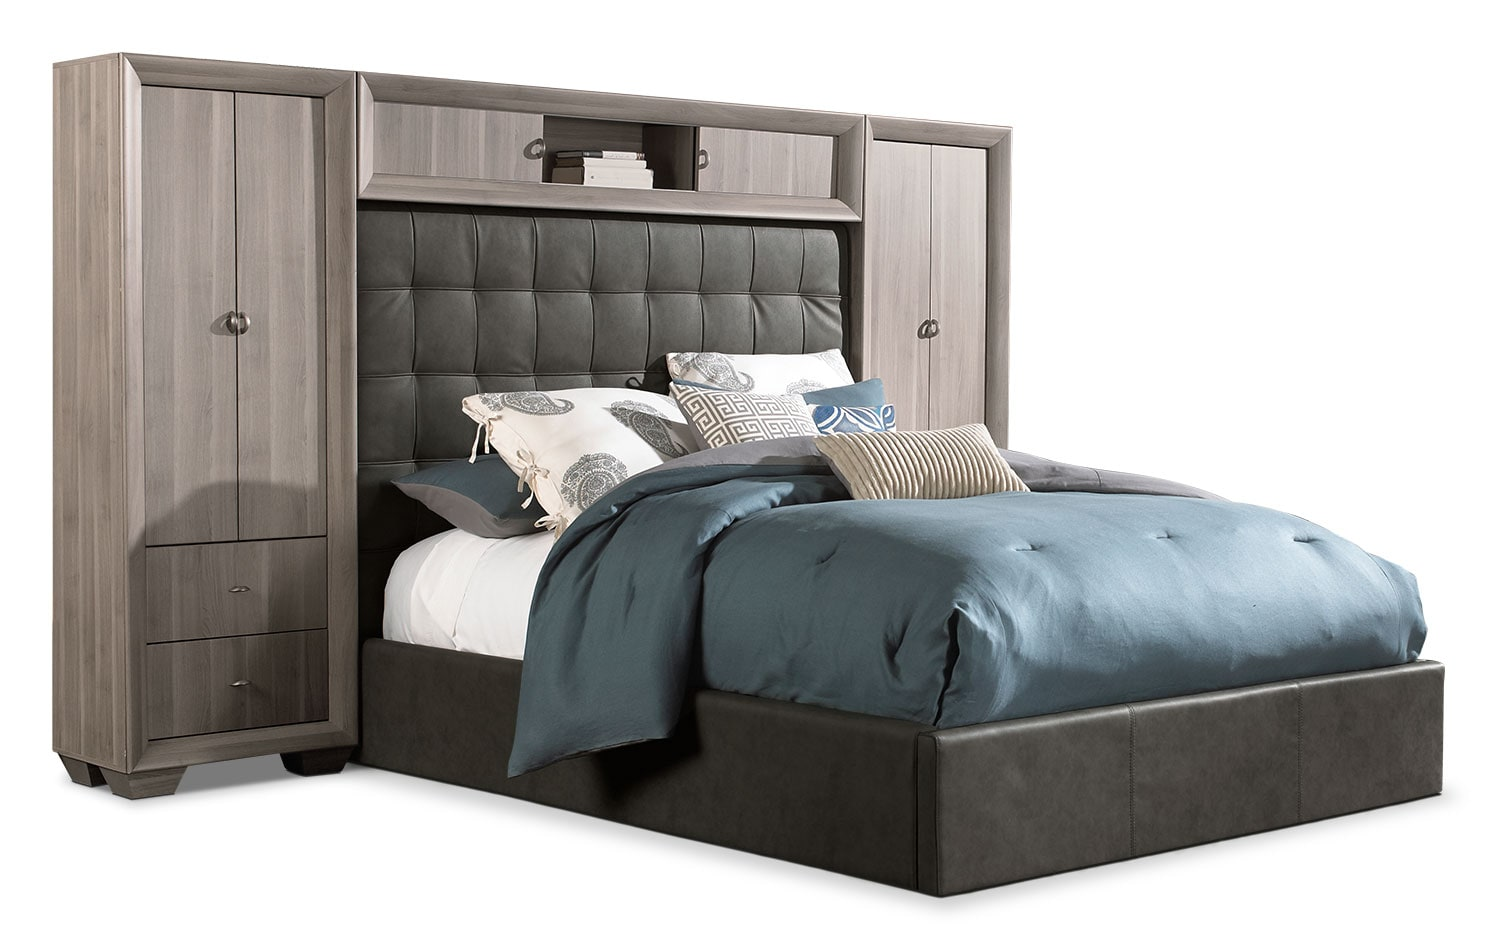 Franklin 5-Piece King Wallbed - Taupe